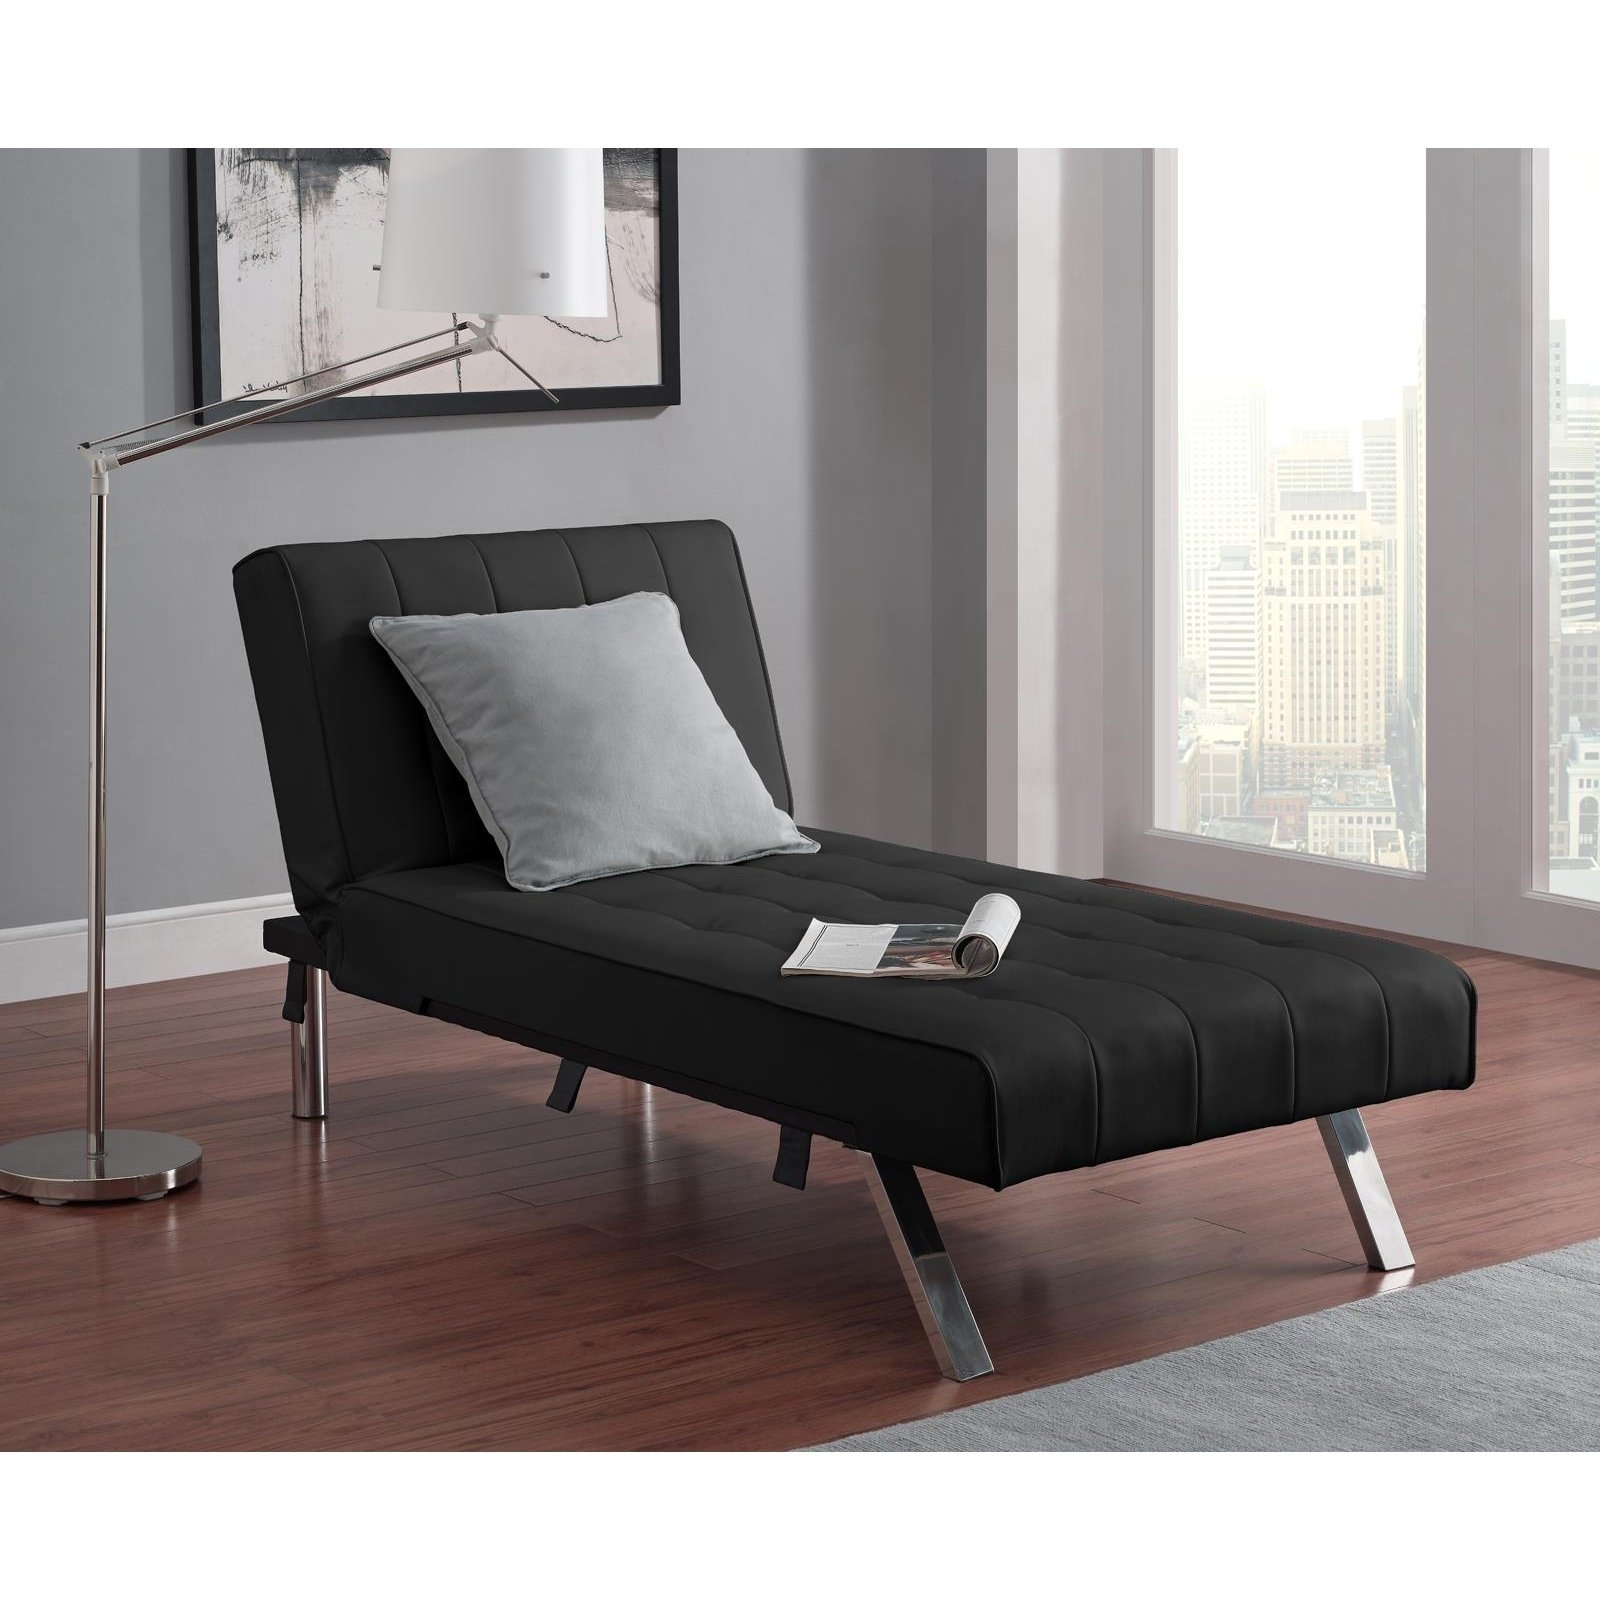 Trendy Dhp Emily Faux Leather Chaise Lounge (View 15 of 15)